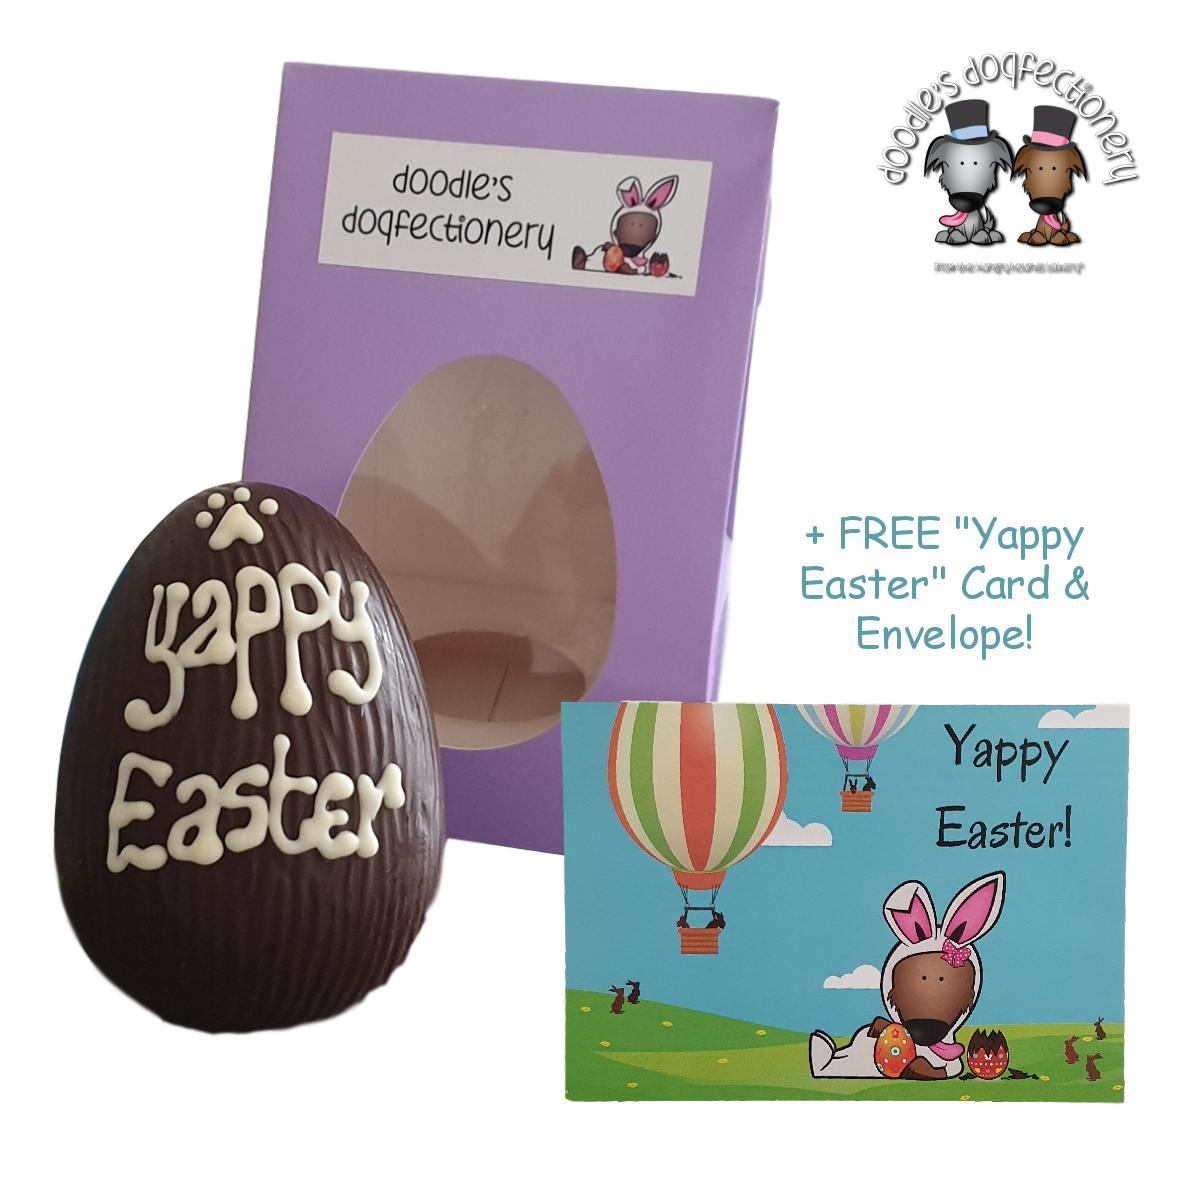 Doodles Dogfectionery Easter Egg 'Yappy Easter' 100gm